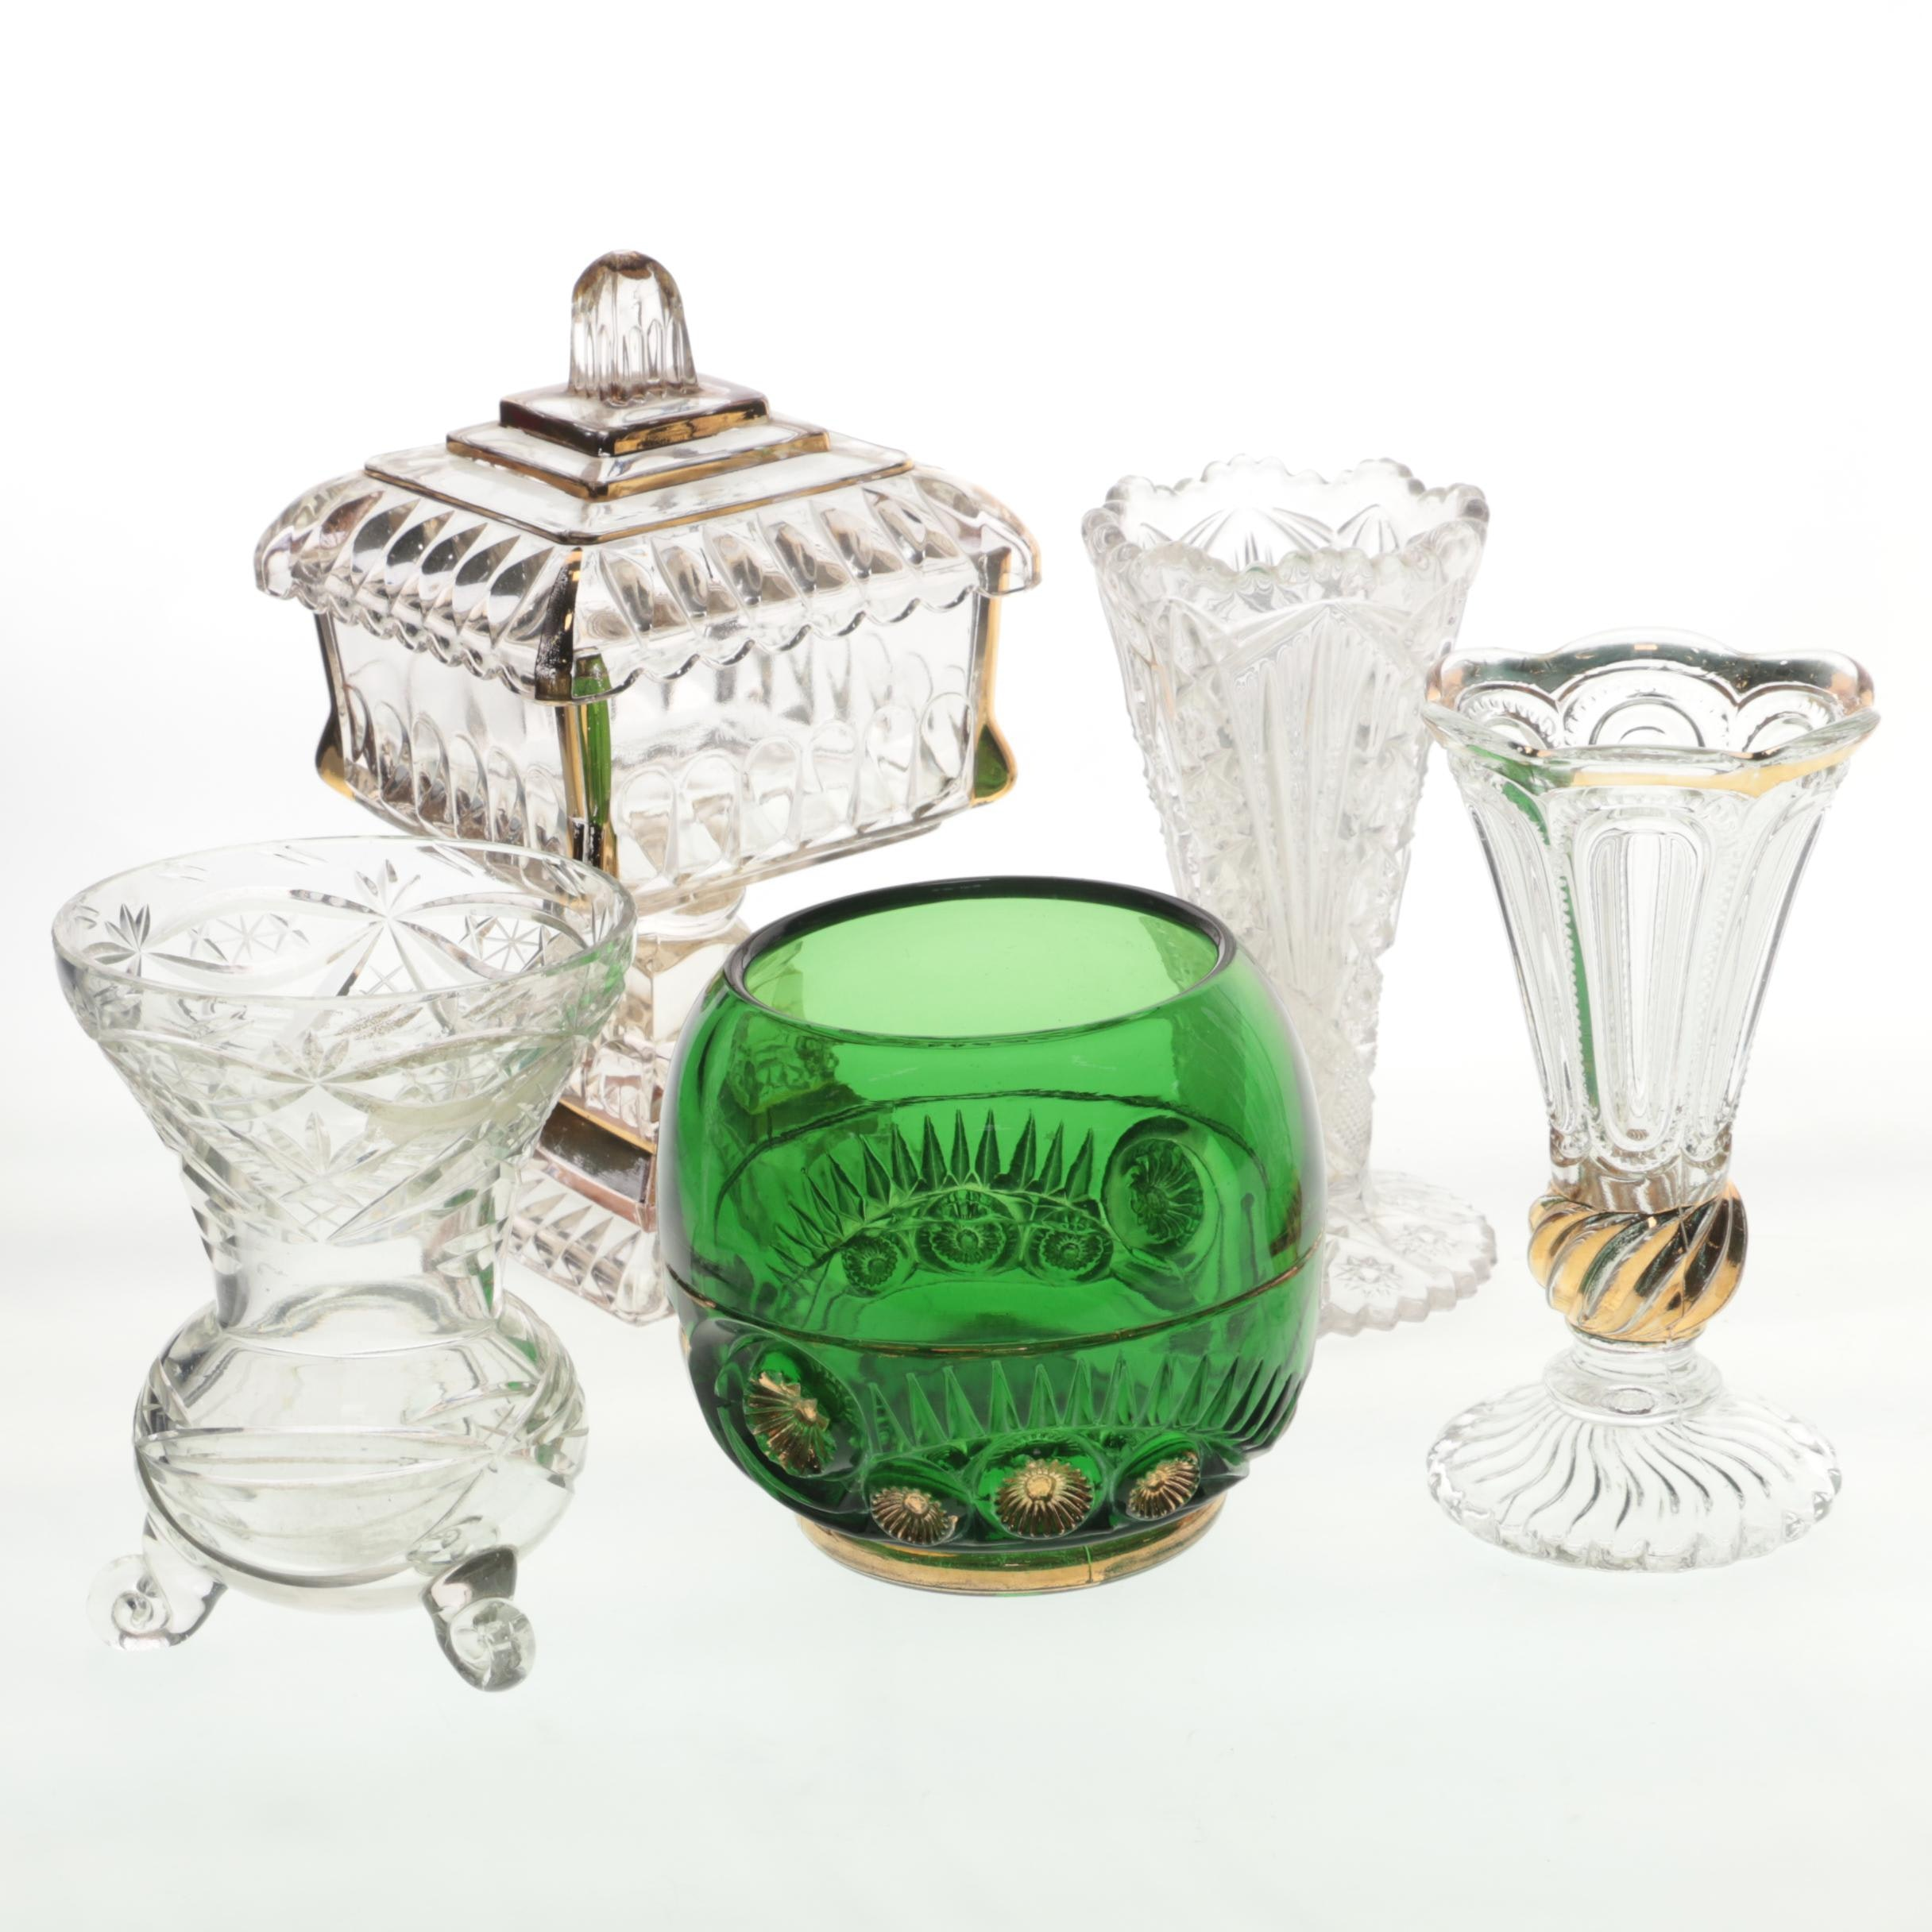 Vintage Glass Vases and Candy Dish